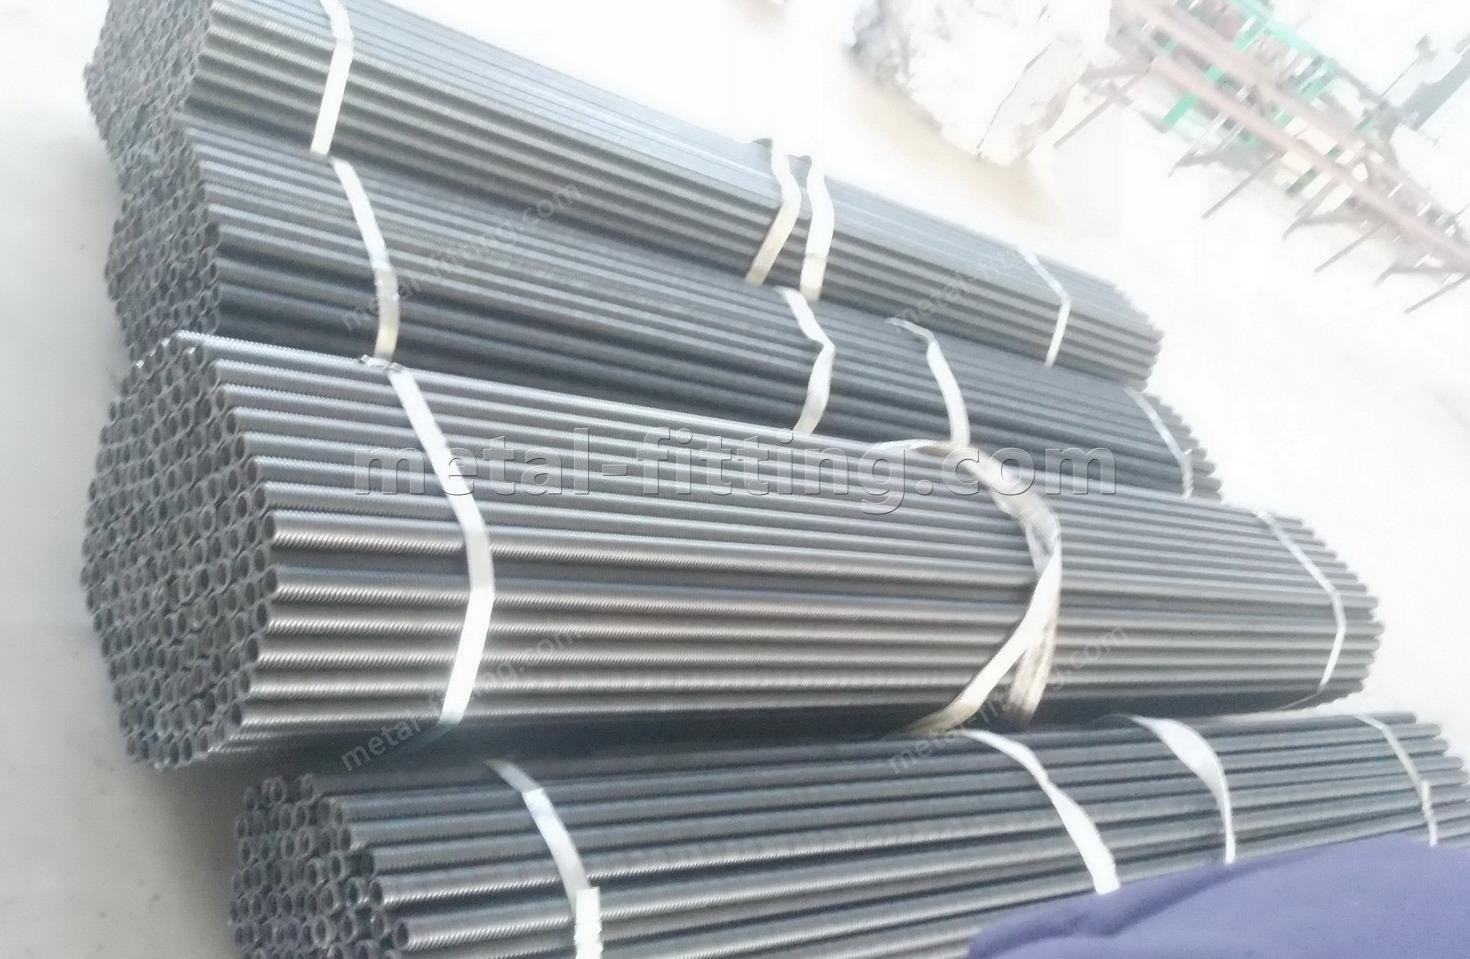 cast iron or steel tube of the scaffolding-Tube (1)